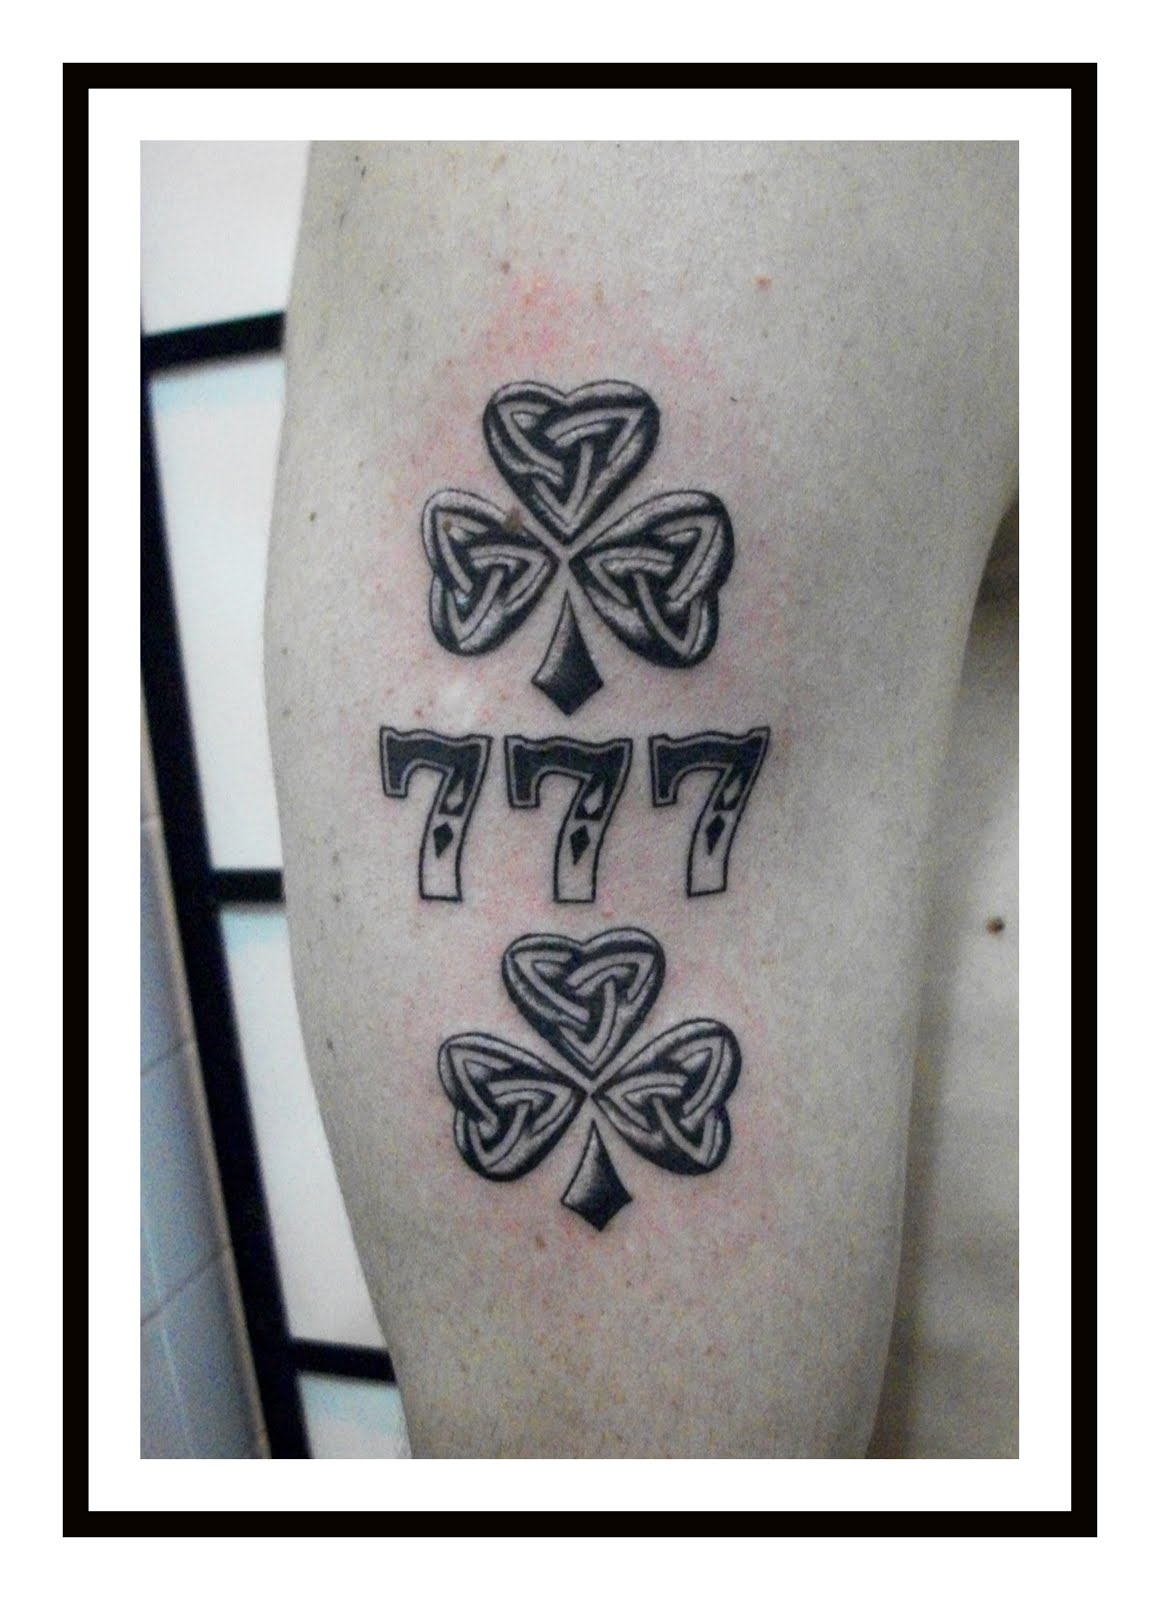 Downtown Tattoo Studio Buenos Aires 777 Tattoo Ideas And Designs